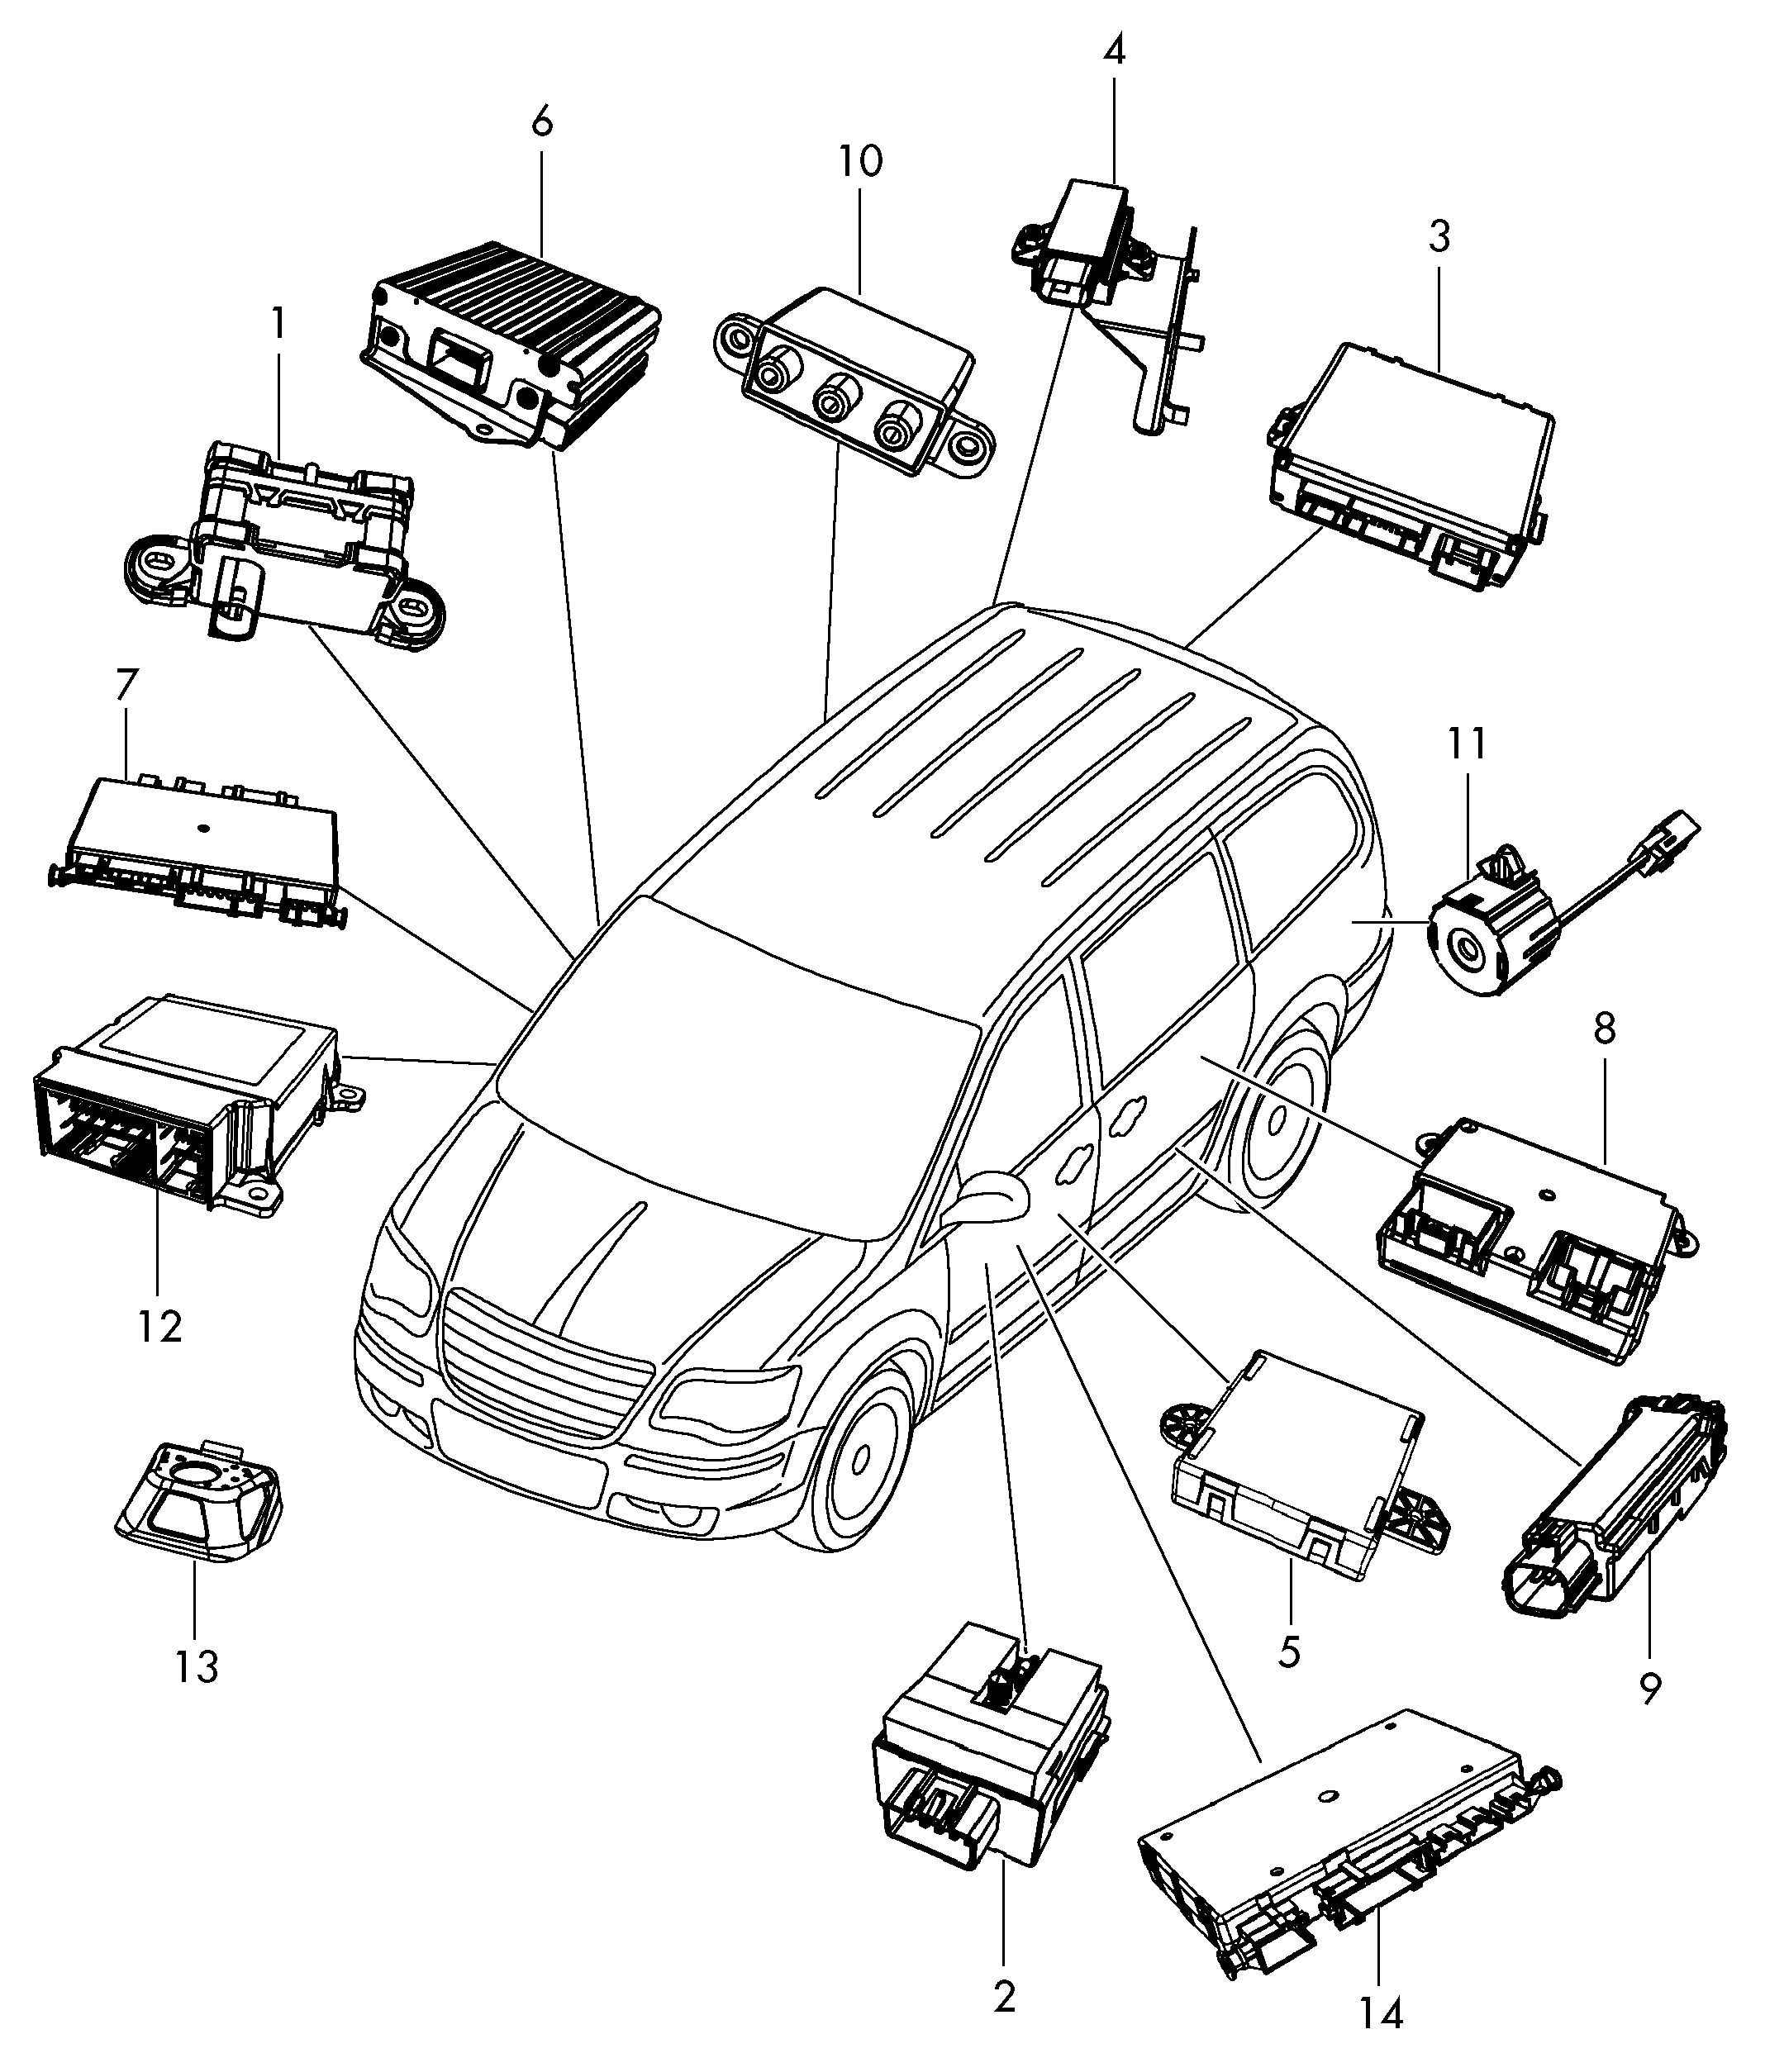 Mk4 Jetta Door Wiring Diagram Rear Bumper Removal Radio Vw Hood Sensor Engine And On